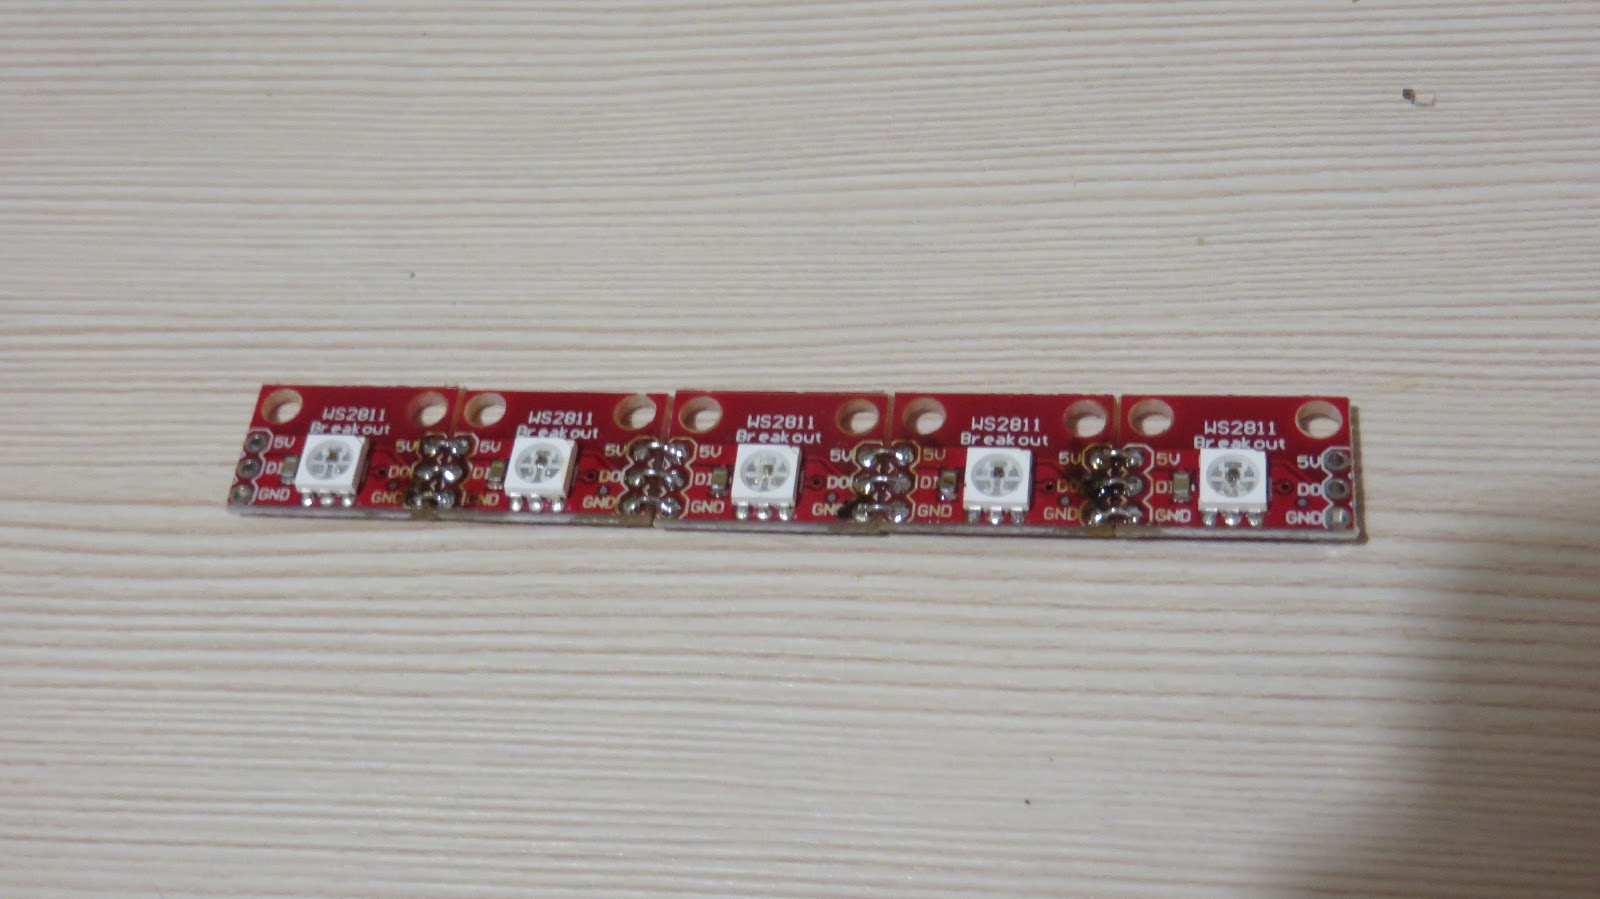 Picture of Assembly: LED Strip Composition.